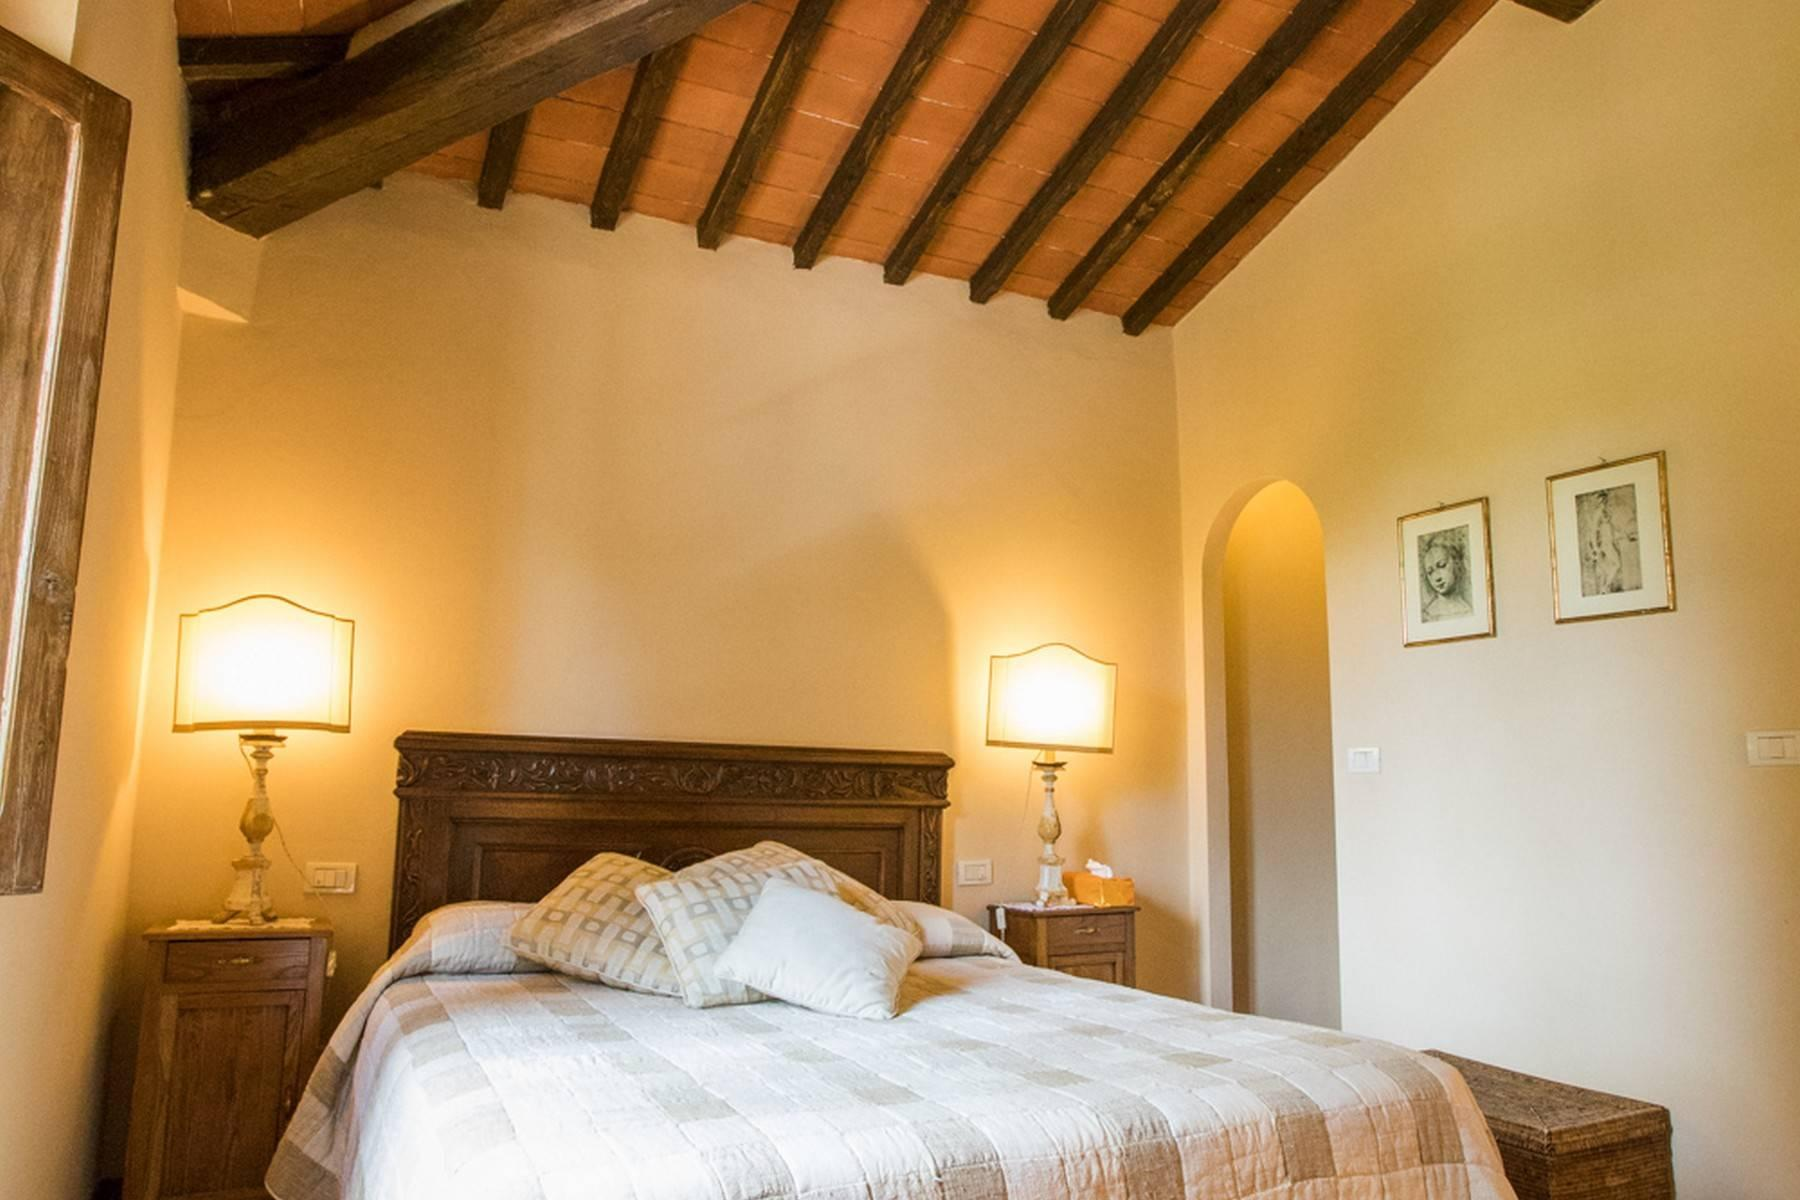 Rustic House in the Tuscan Hills for Sale - 6